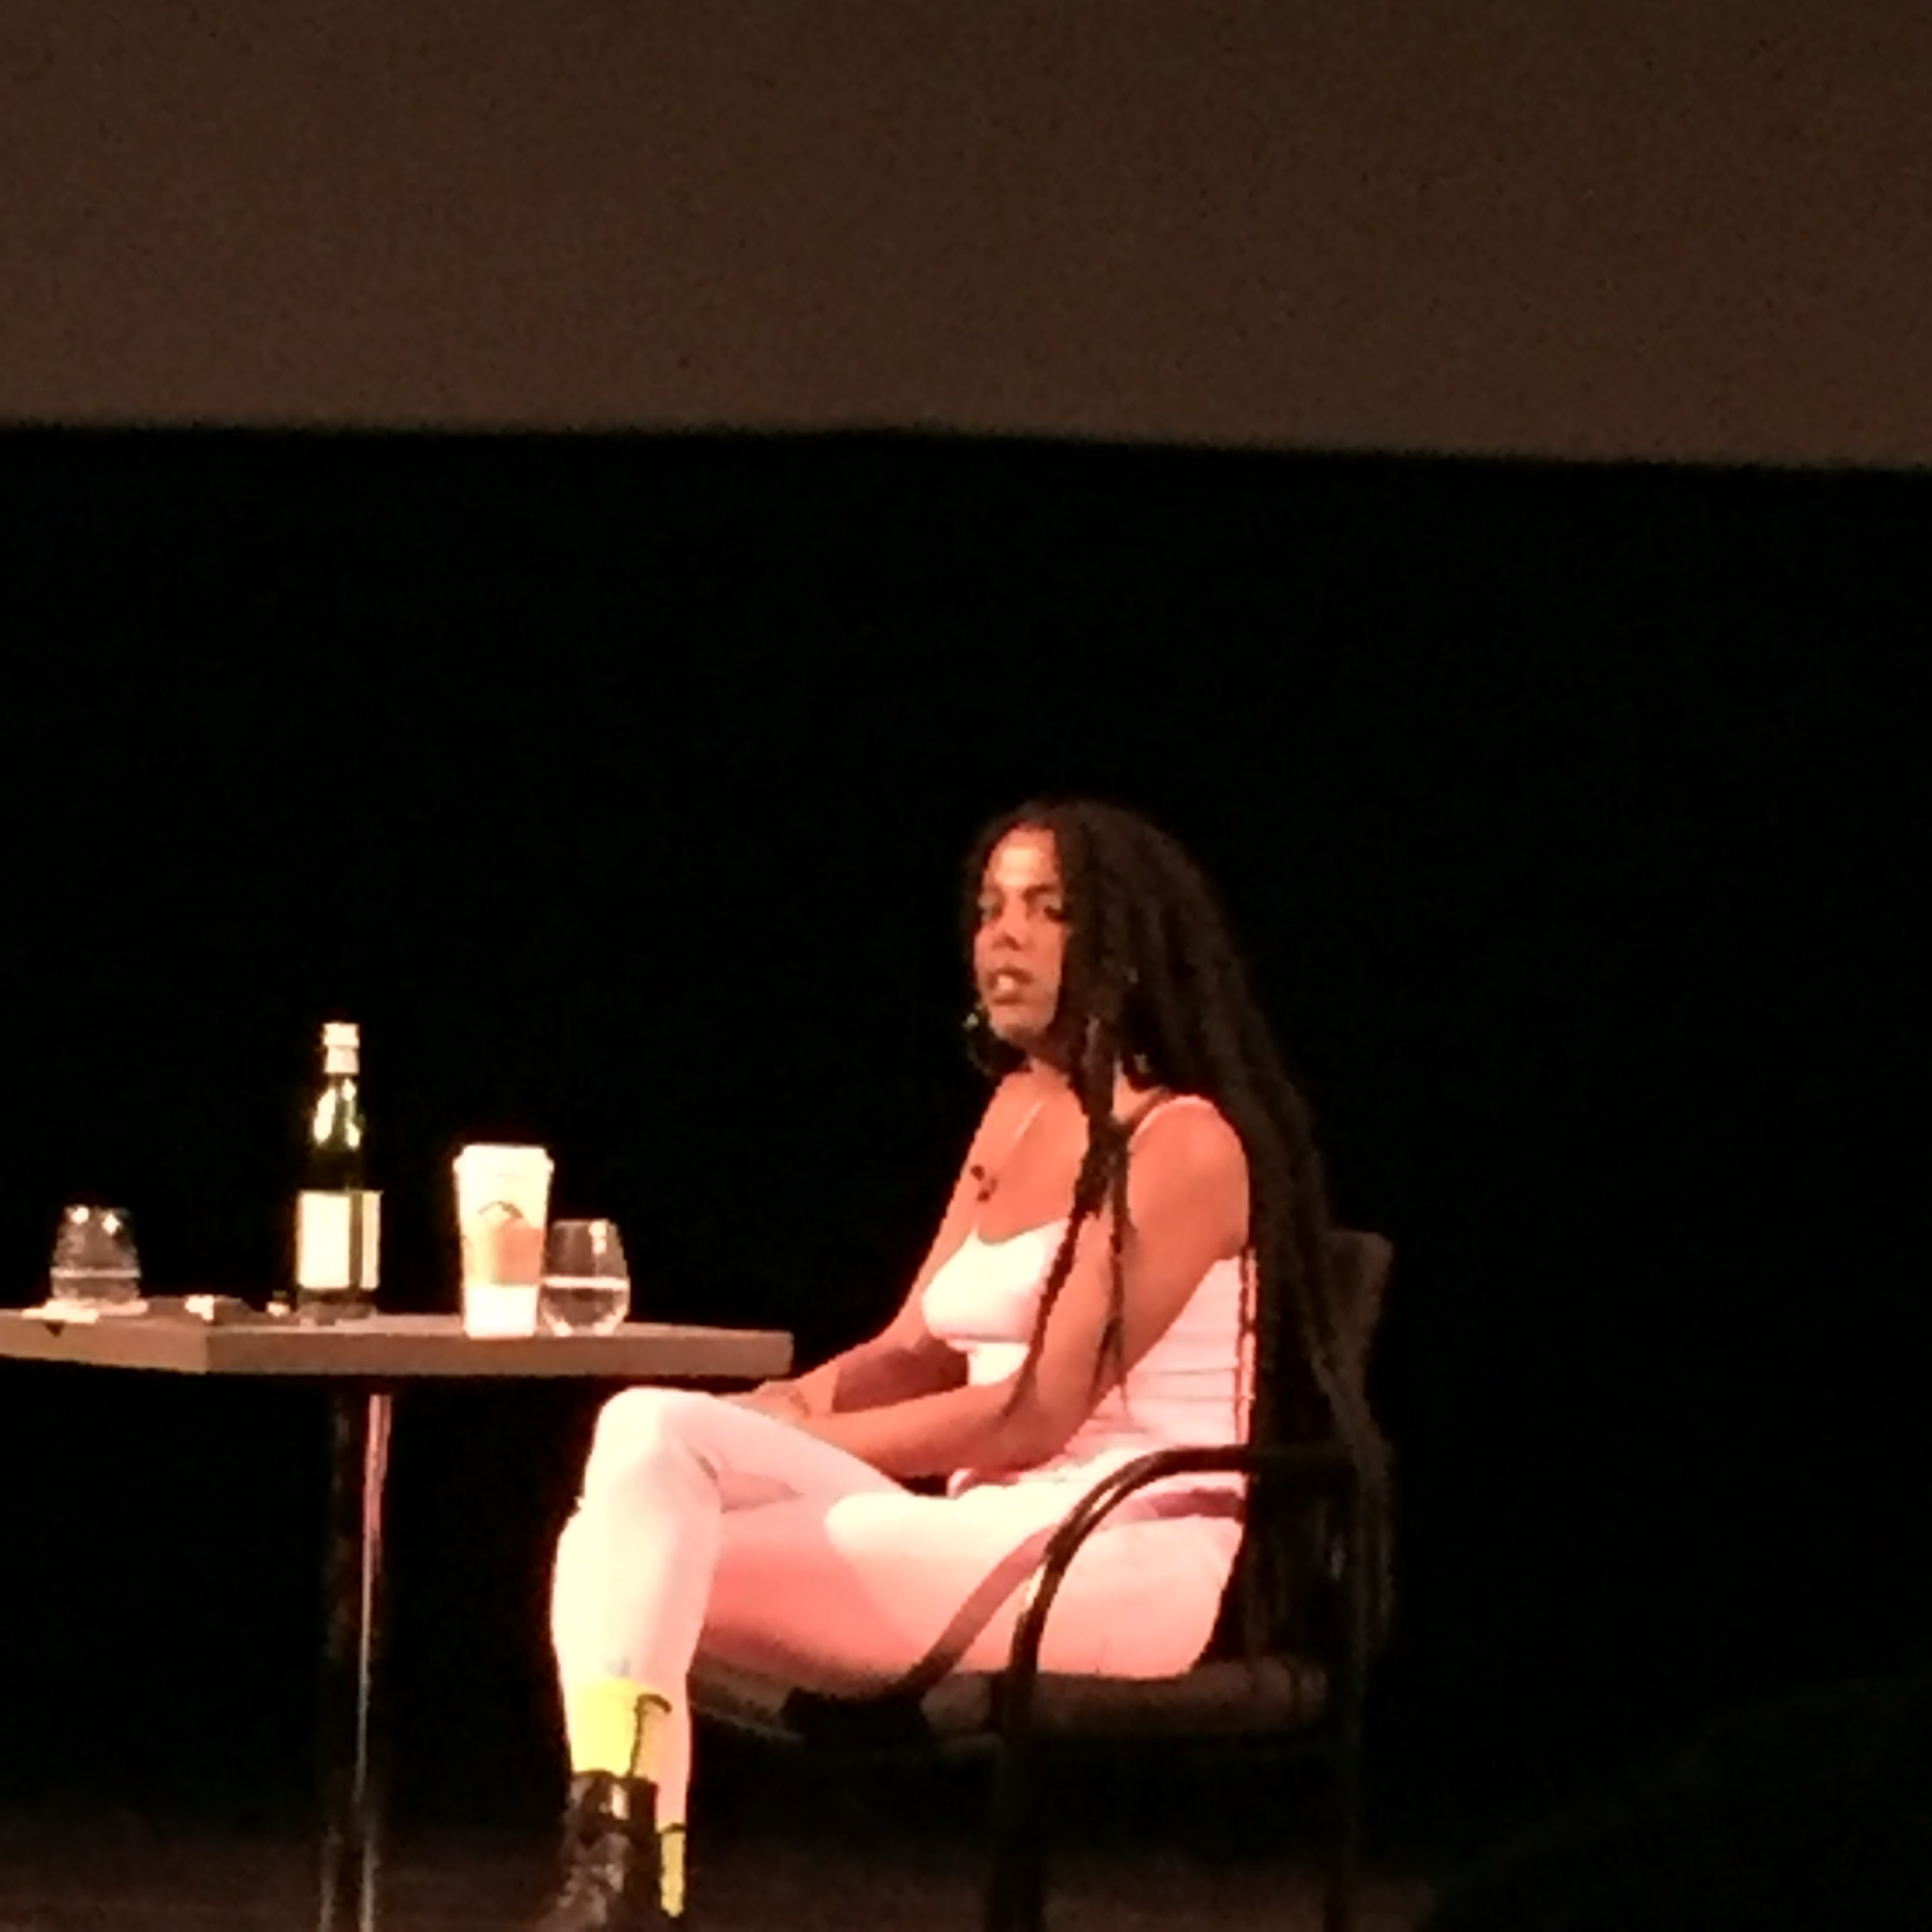 Juliana Huxtable in conversation with Mikhel Proulx on Jan. 20 at D. B. Clarke Theatre, Concordia University.